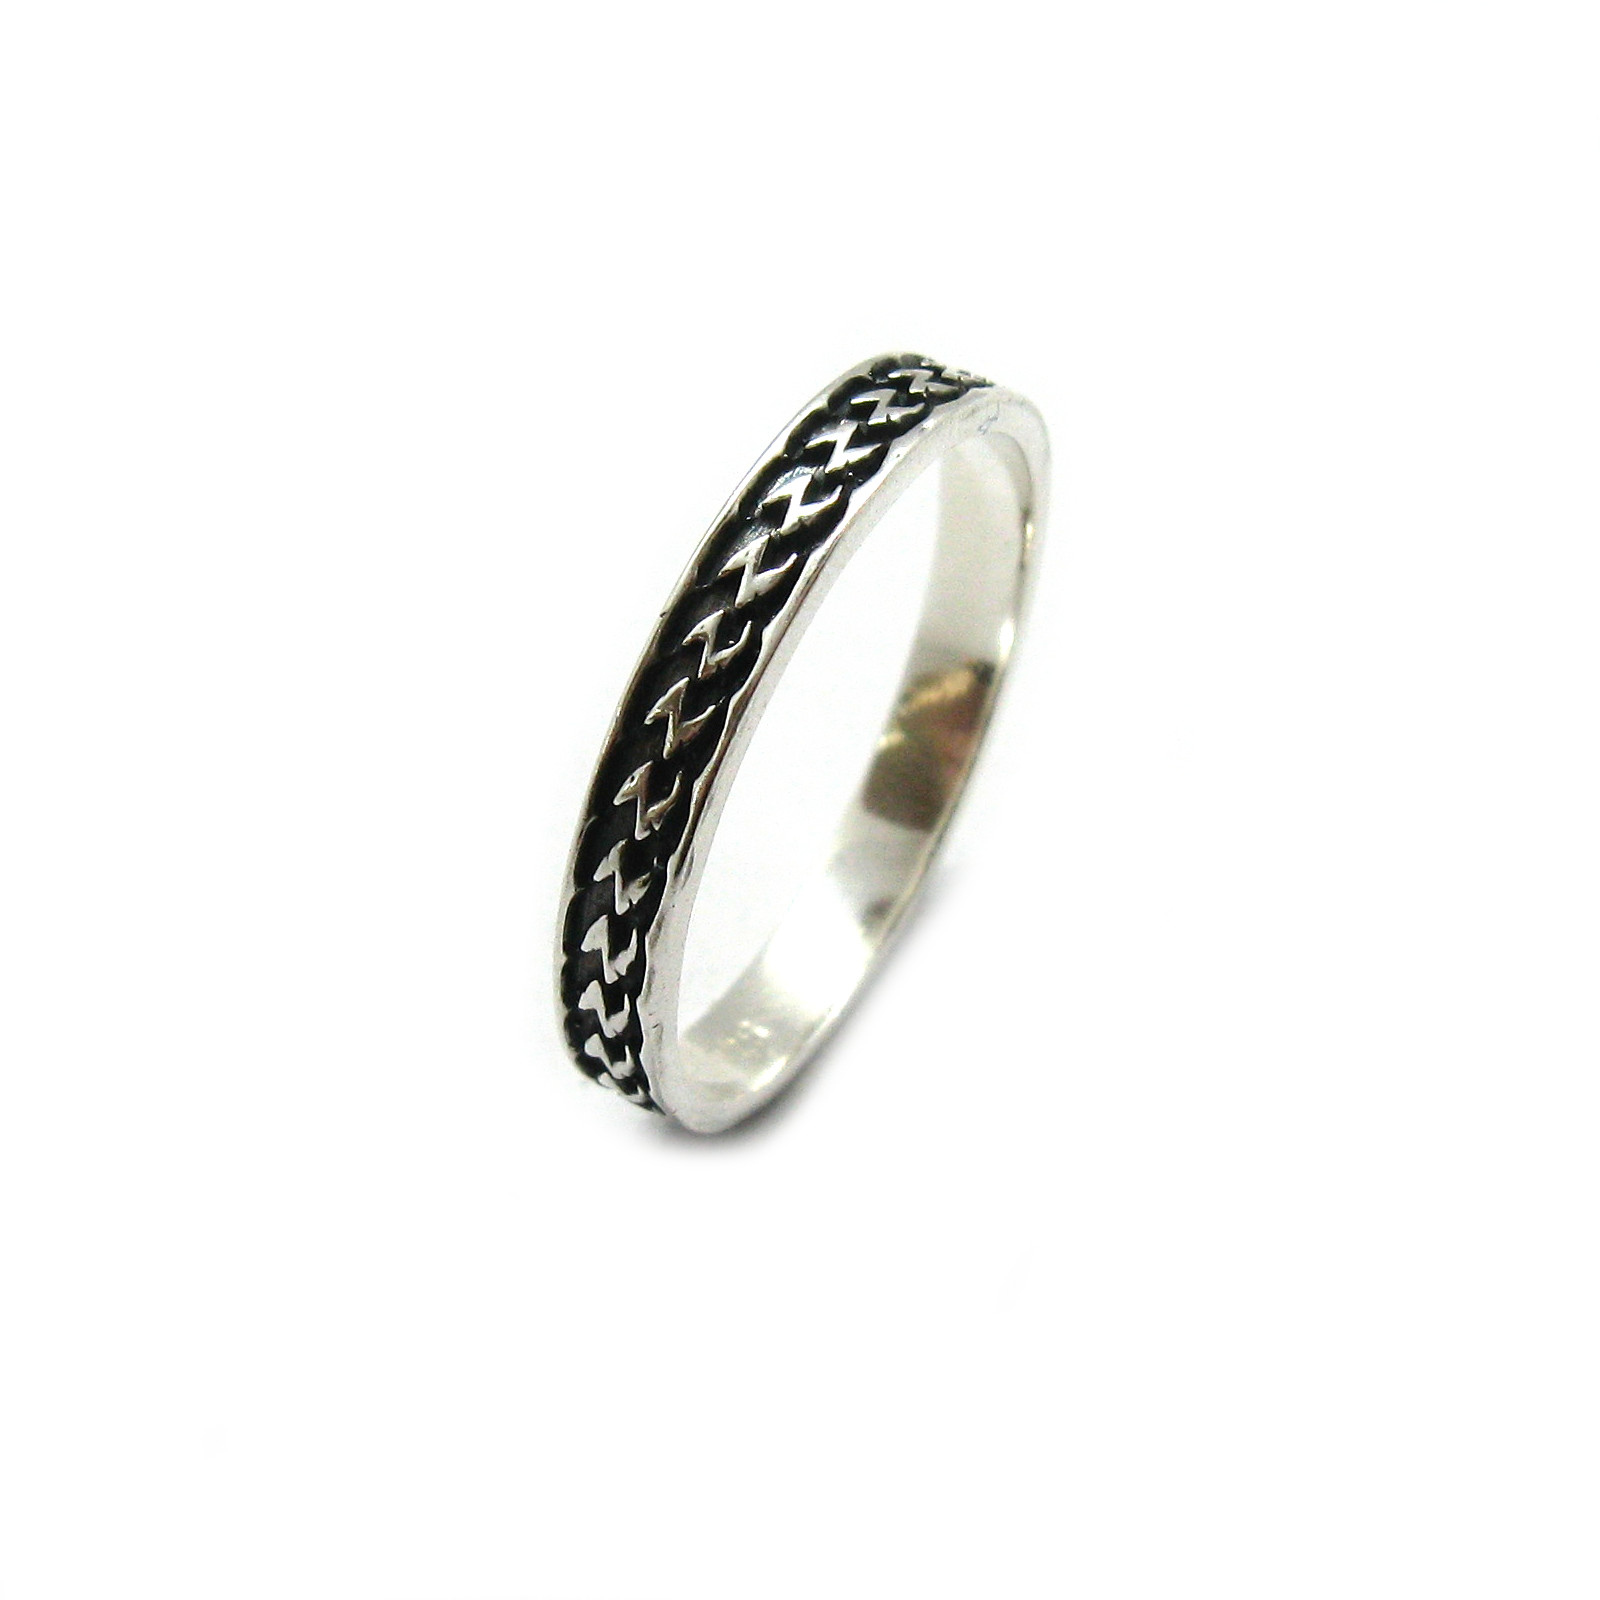 Silver ring - R001946